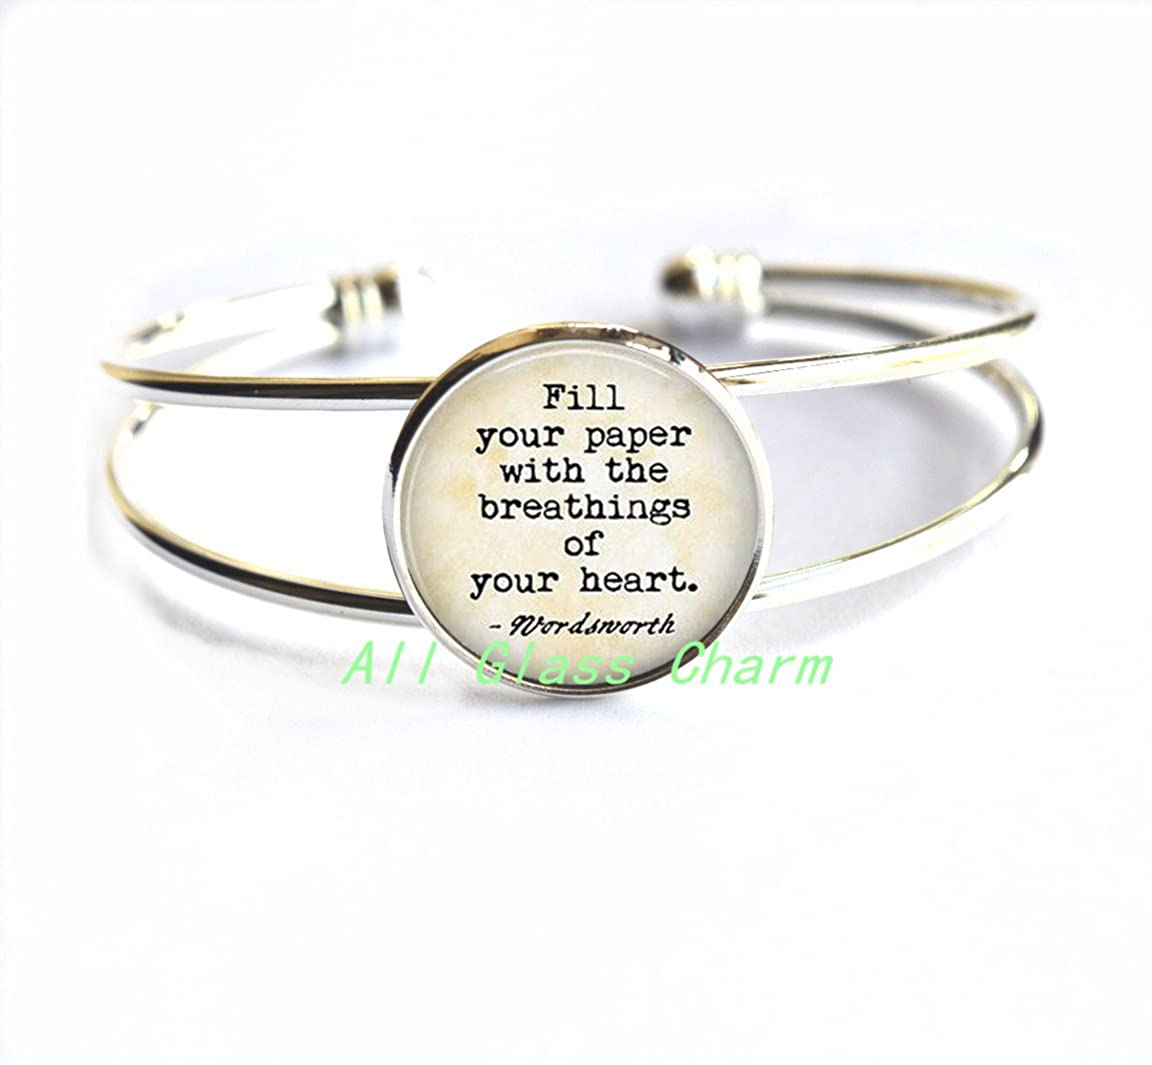 Literary Bracelets,AS065 Wordsworth Bracelet Charming Bracelet,Writer Quote by Fill your paper with the breathings of your heart